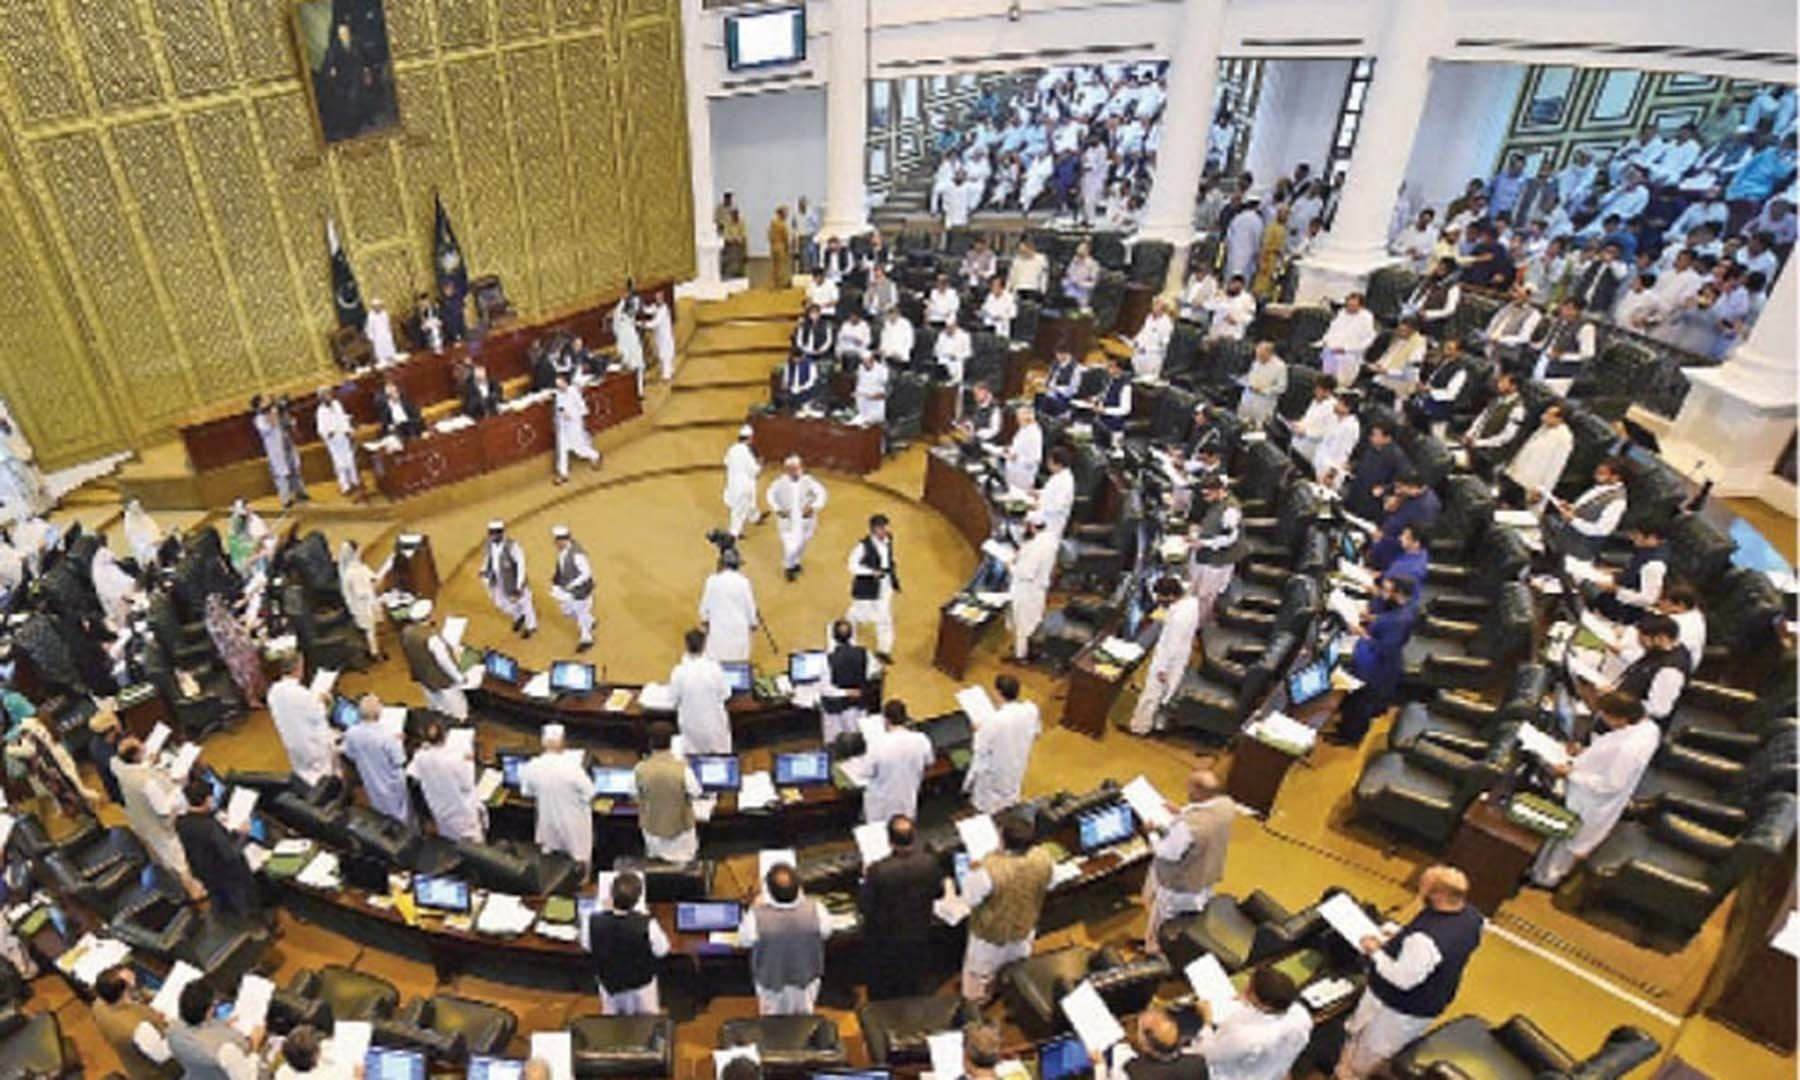 Responding to the criticism of the opposition, labour minister Shaukat Yousafzai informed the house that over 4,000 people of Janikhel tribe staged protests at three different places. — Photo courtesy Abdul Majeed Goraya/File